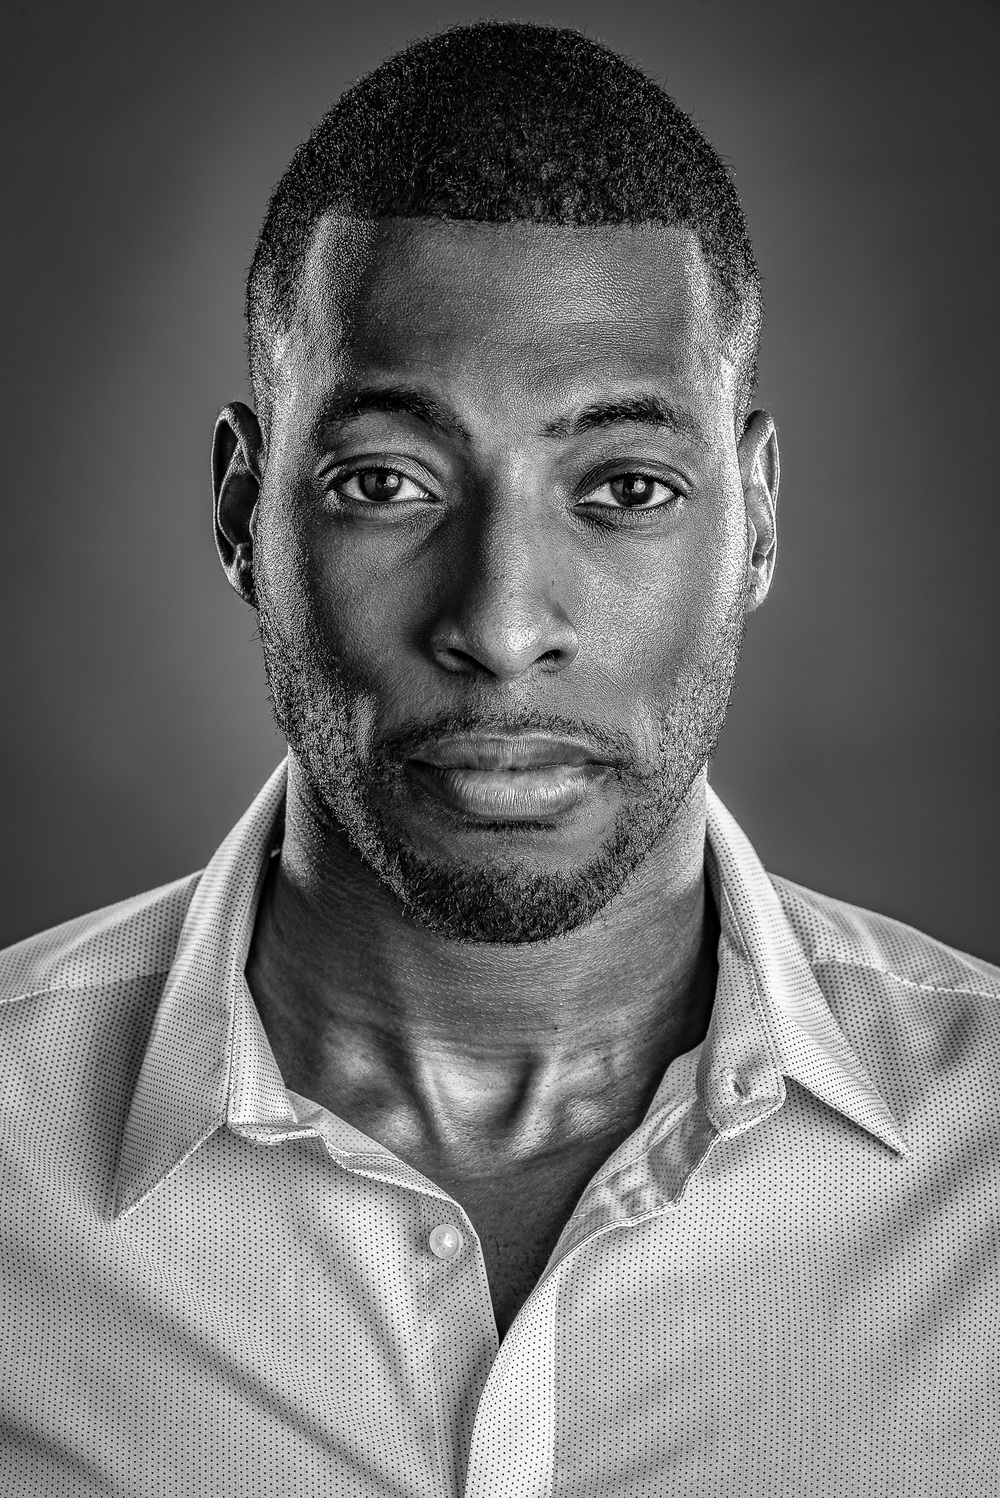 Headshot of Actor Model Black & White